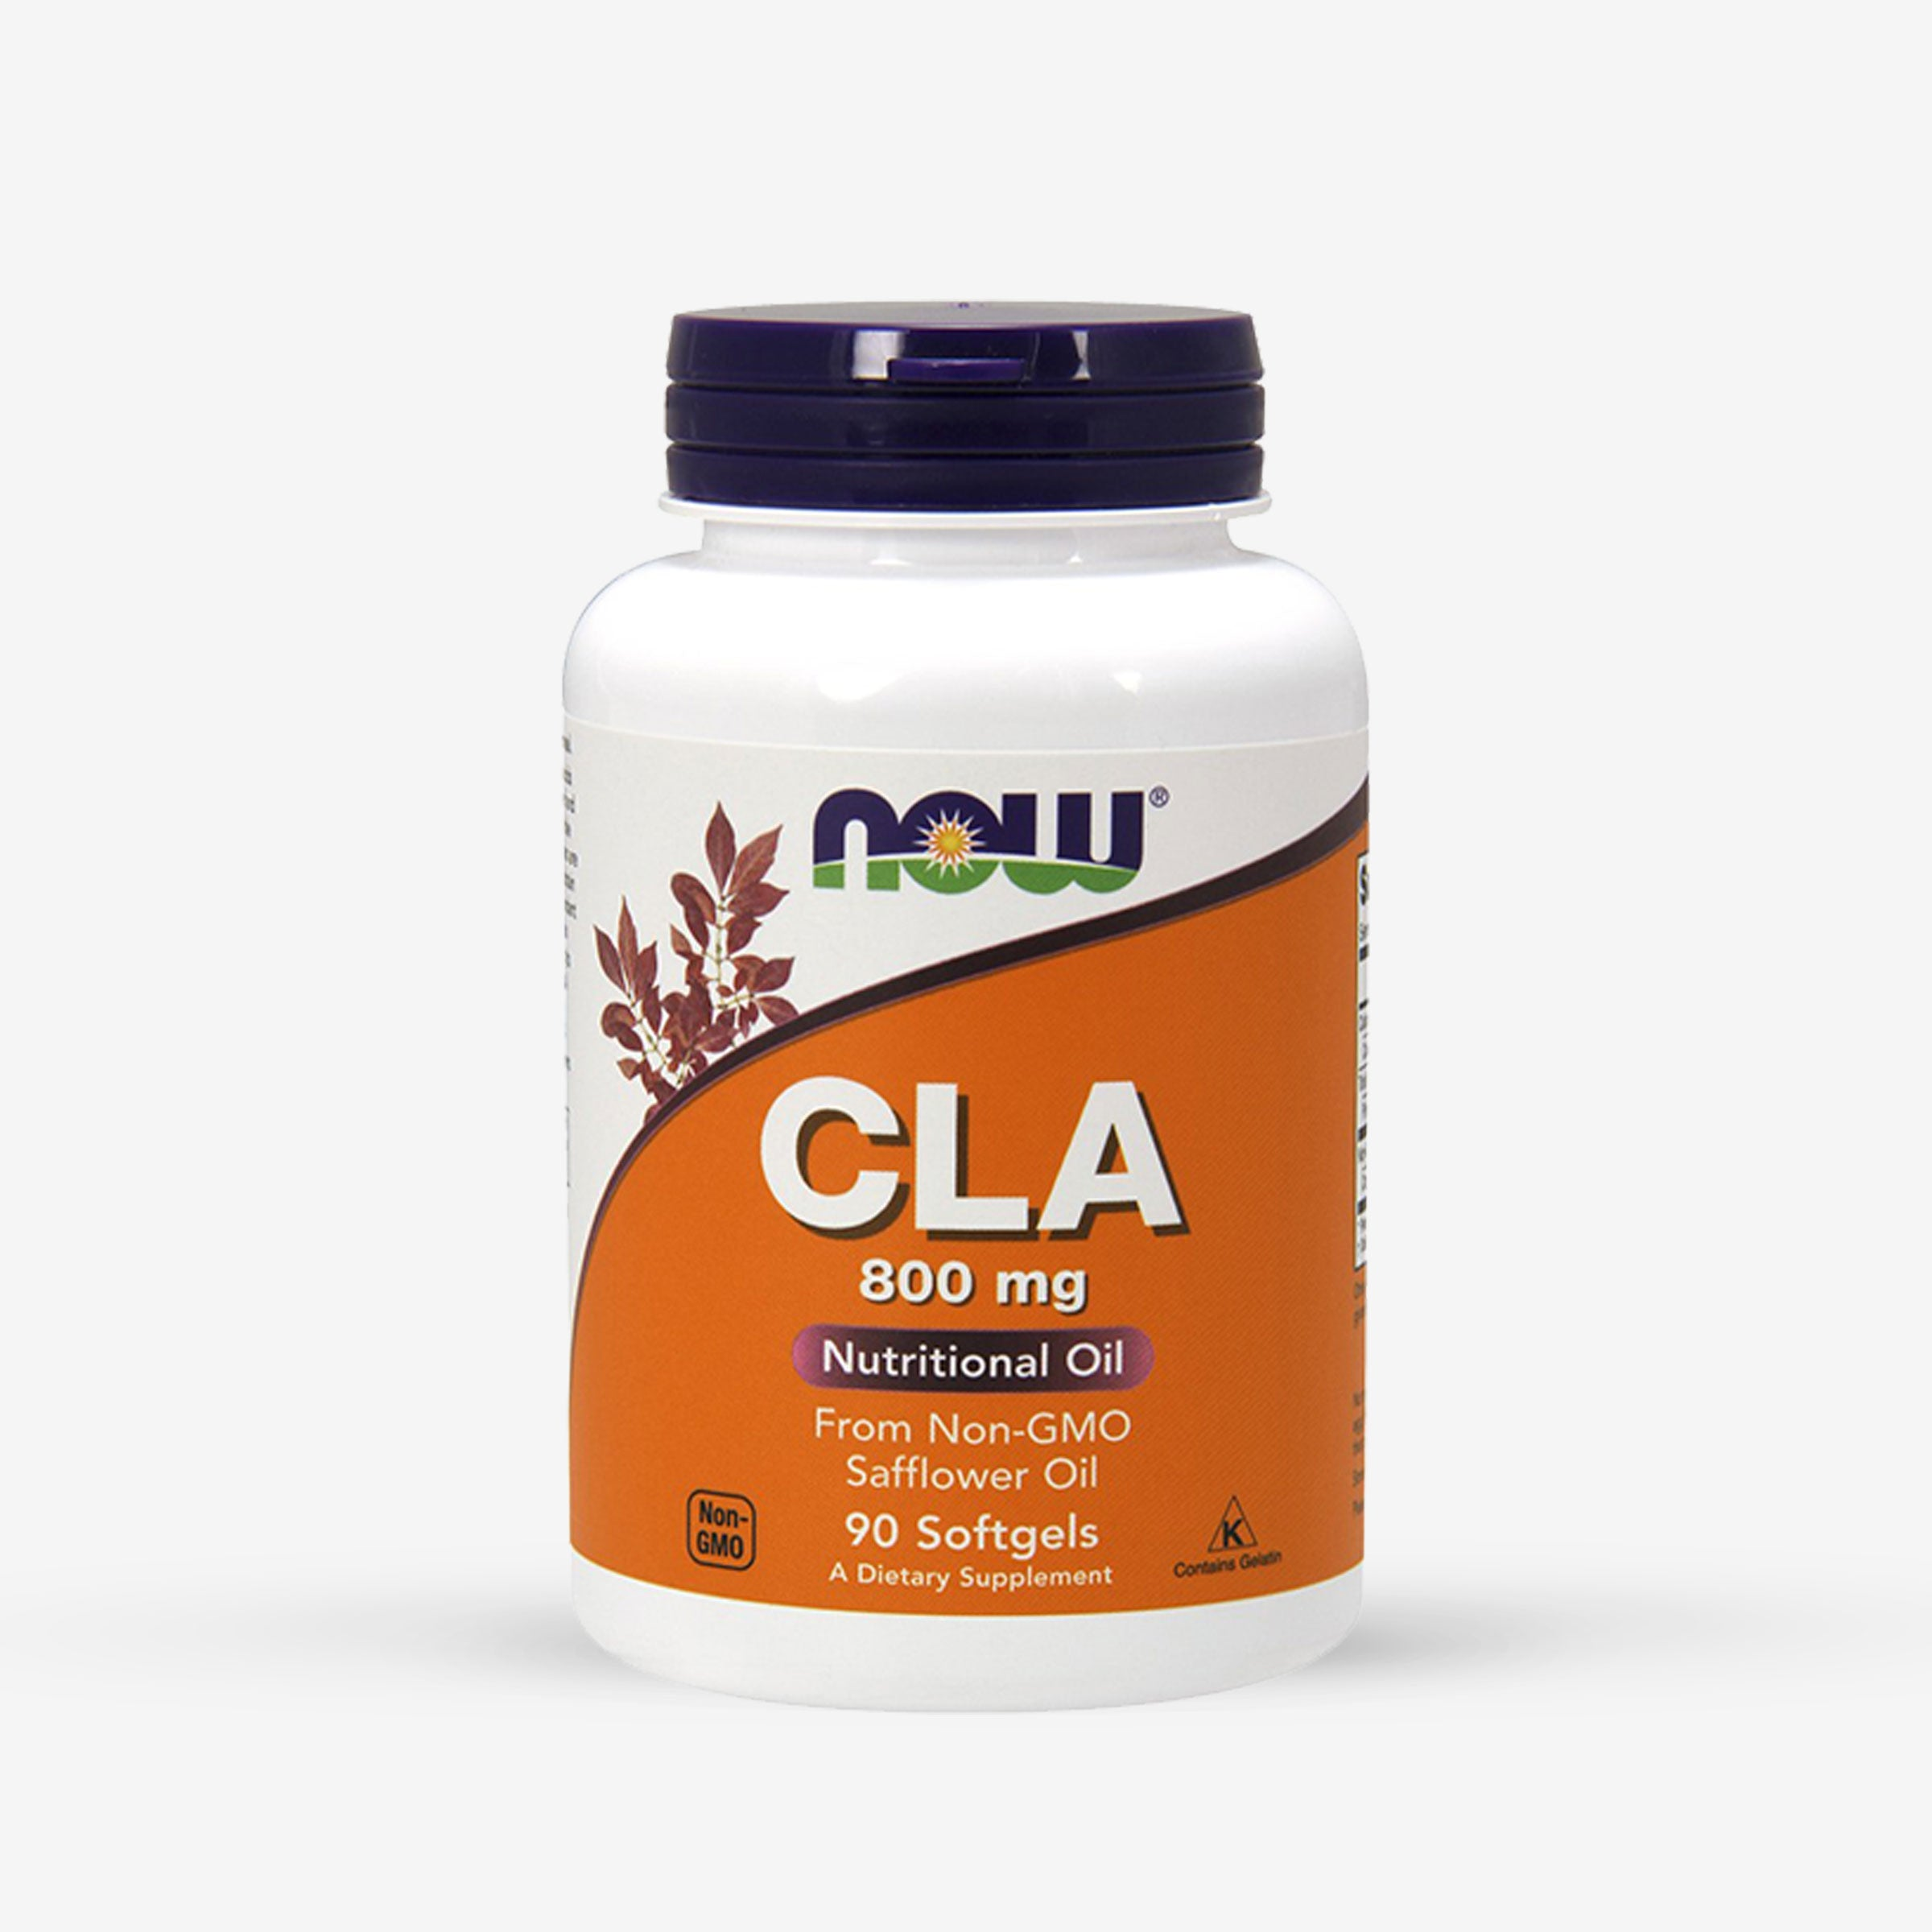 NOW® CLA Conjugated Linoleic Acid 800mg (90 Softgels)